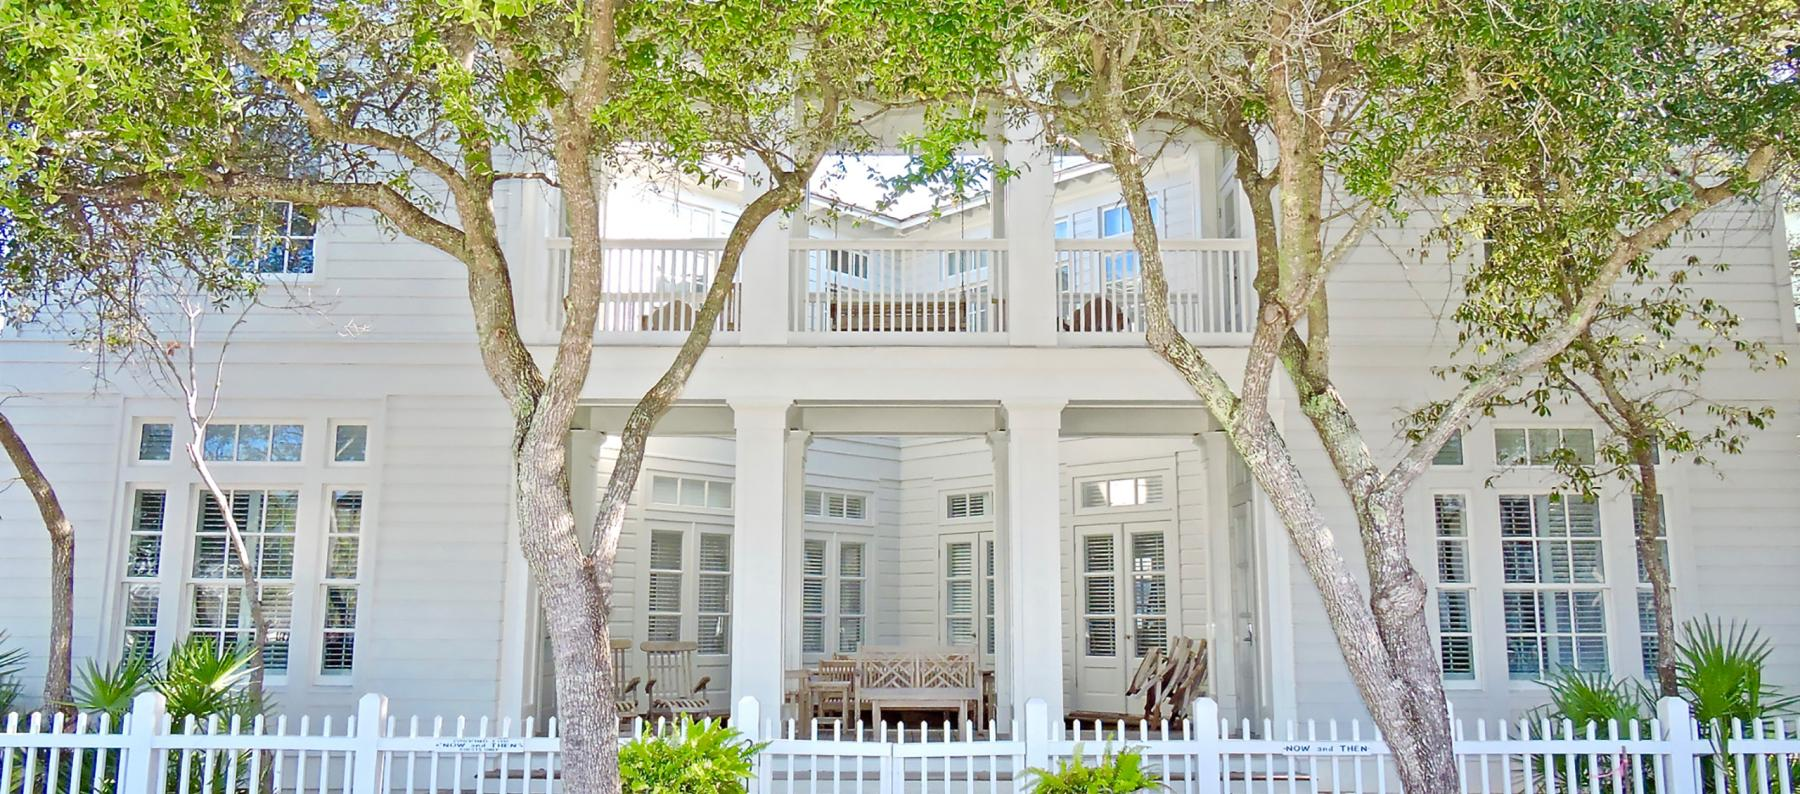 DAYS LIKE THIS COTTAGE IN SEASIDE, FL